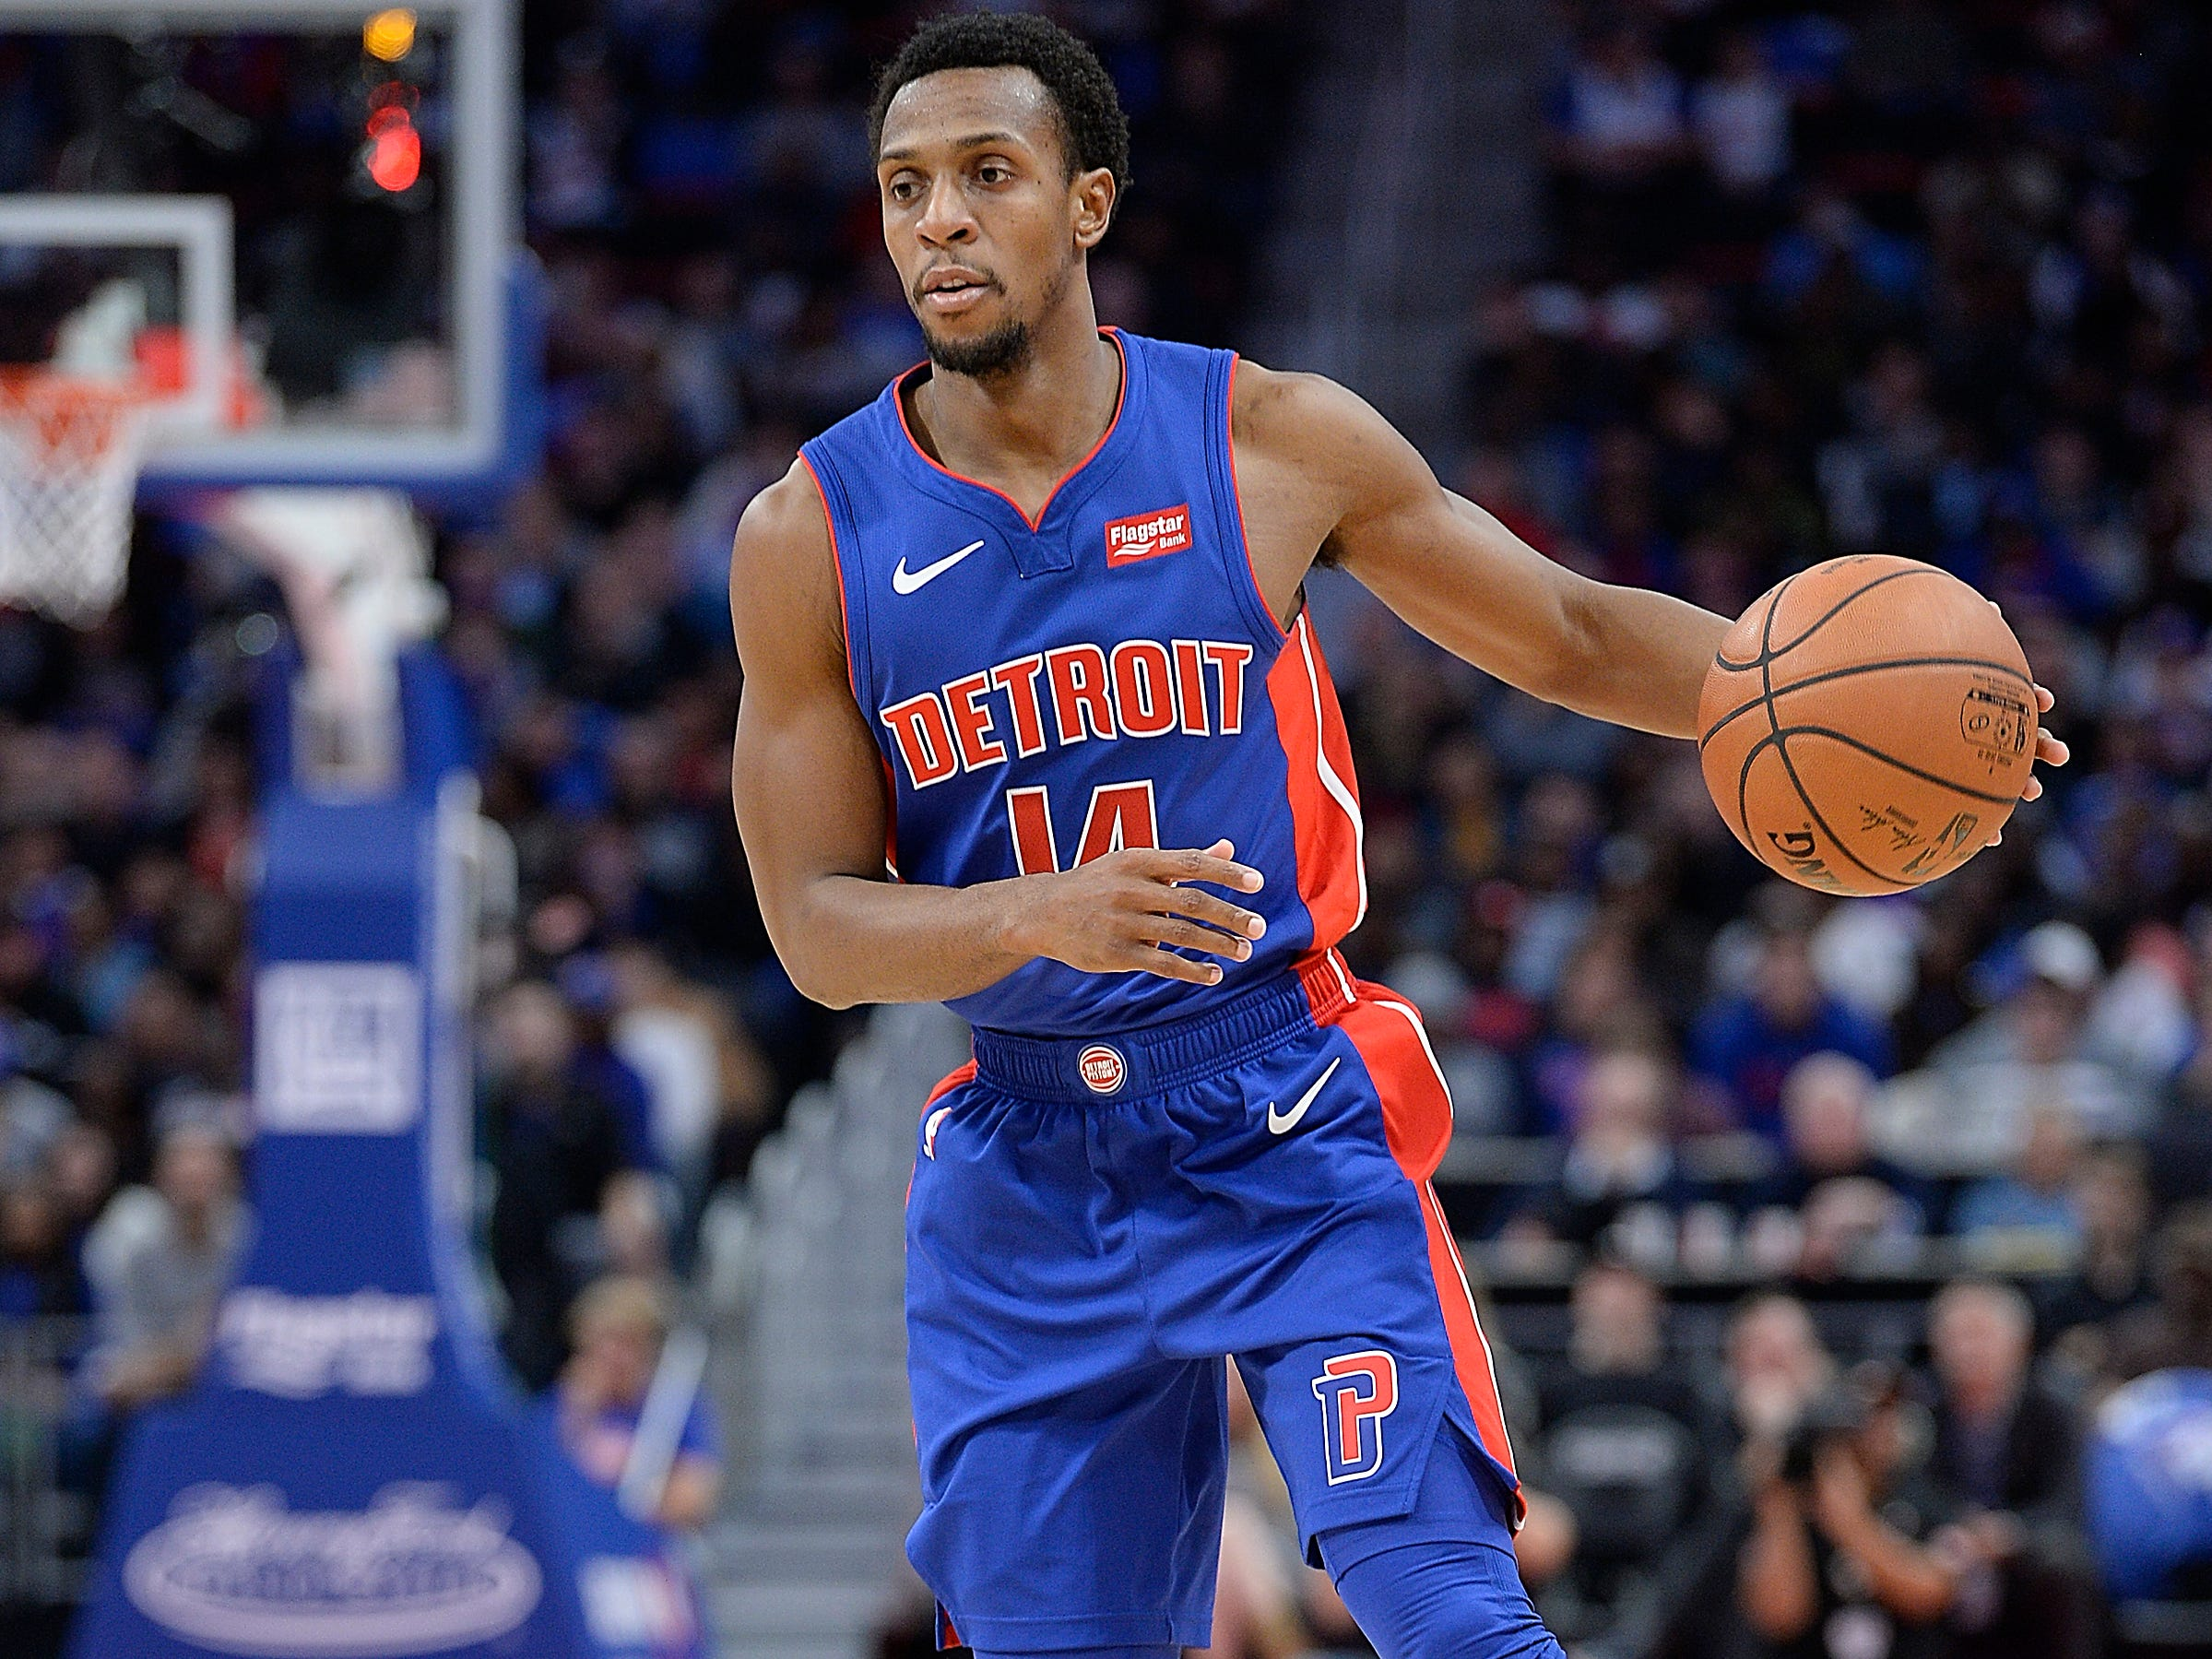 Ish Smith -- Stats: 9.2 pts., 3.0 assts., 33% 3FG in 22 games. Age: 30. It's no coincidence that the Pistons' slide came just after Smith's groin injury. He's a critical piece to their reserve unit, and they haven't been able to replace his game-changing speed. He has shot better on 3-pointers, but not quite as well as last season. Grade: B-